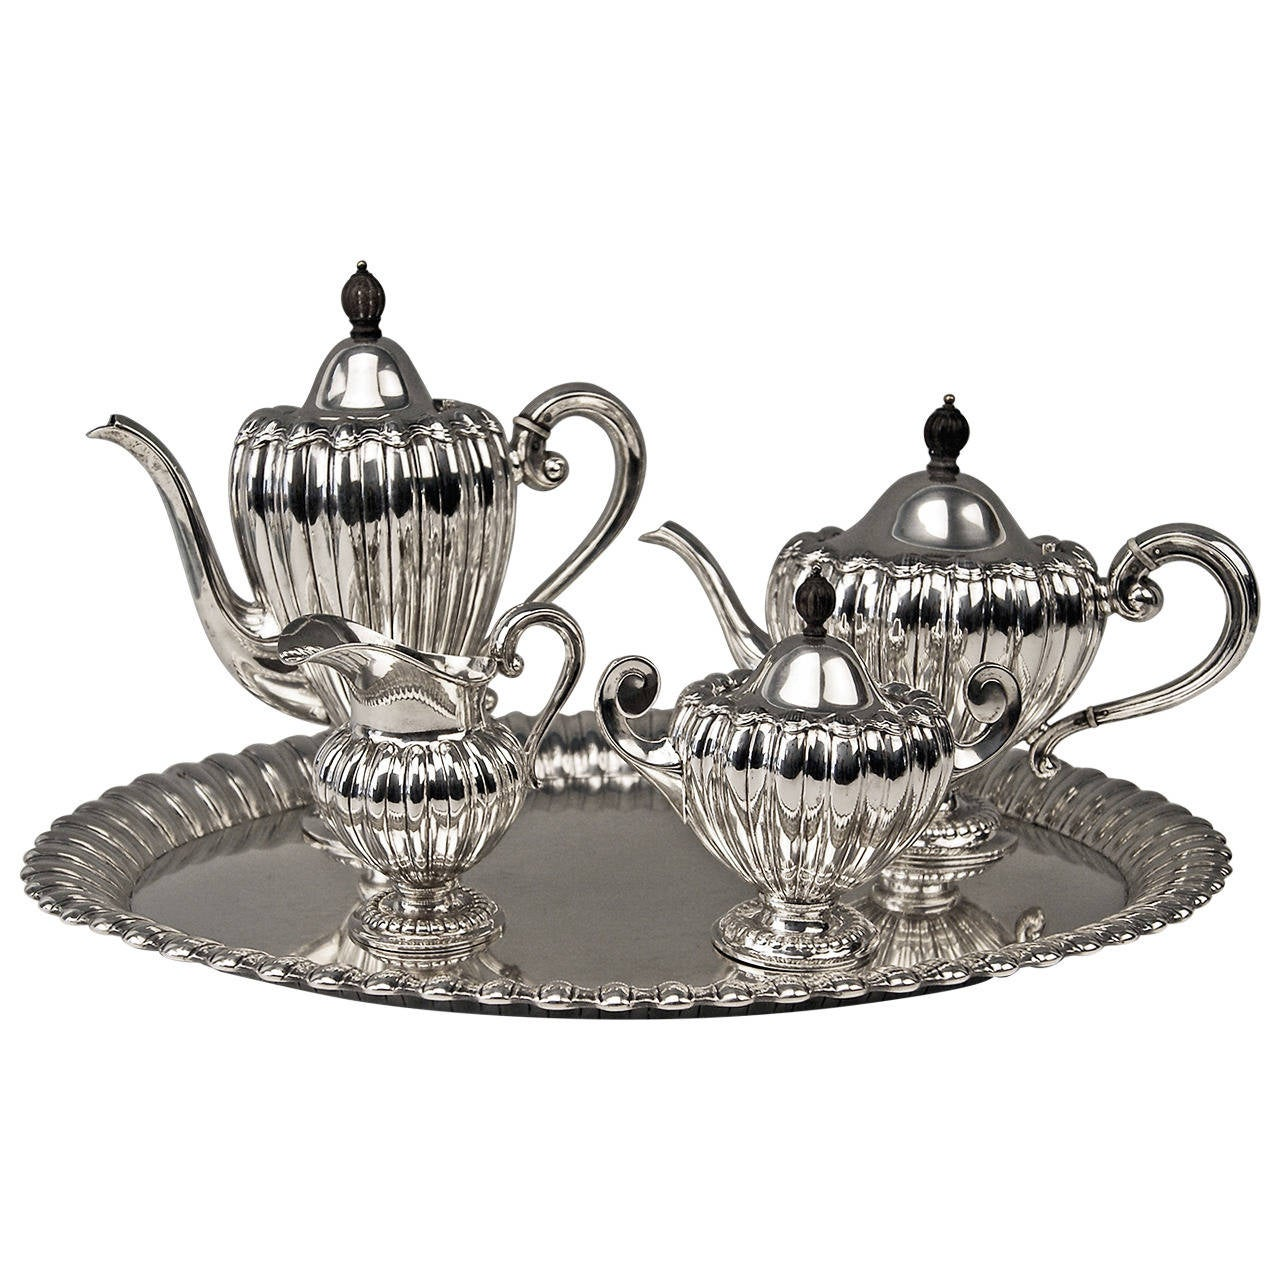 Silver Art Deco Coffee Tea Set Made by Wilkens, Germany, circa 1918 For Sale